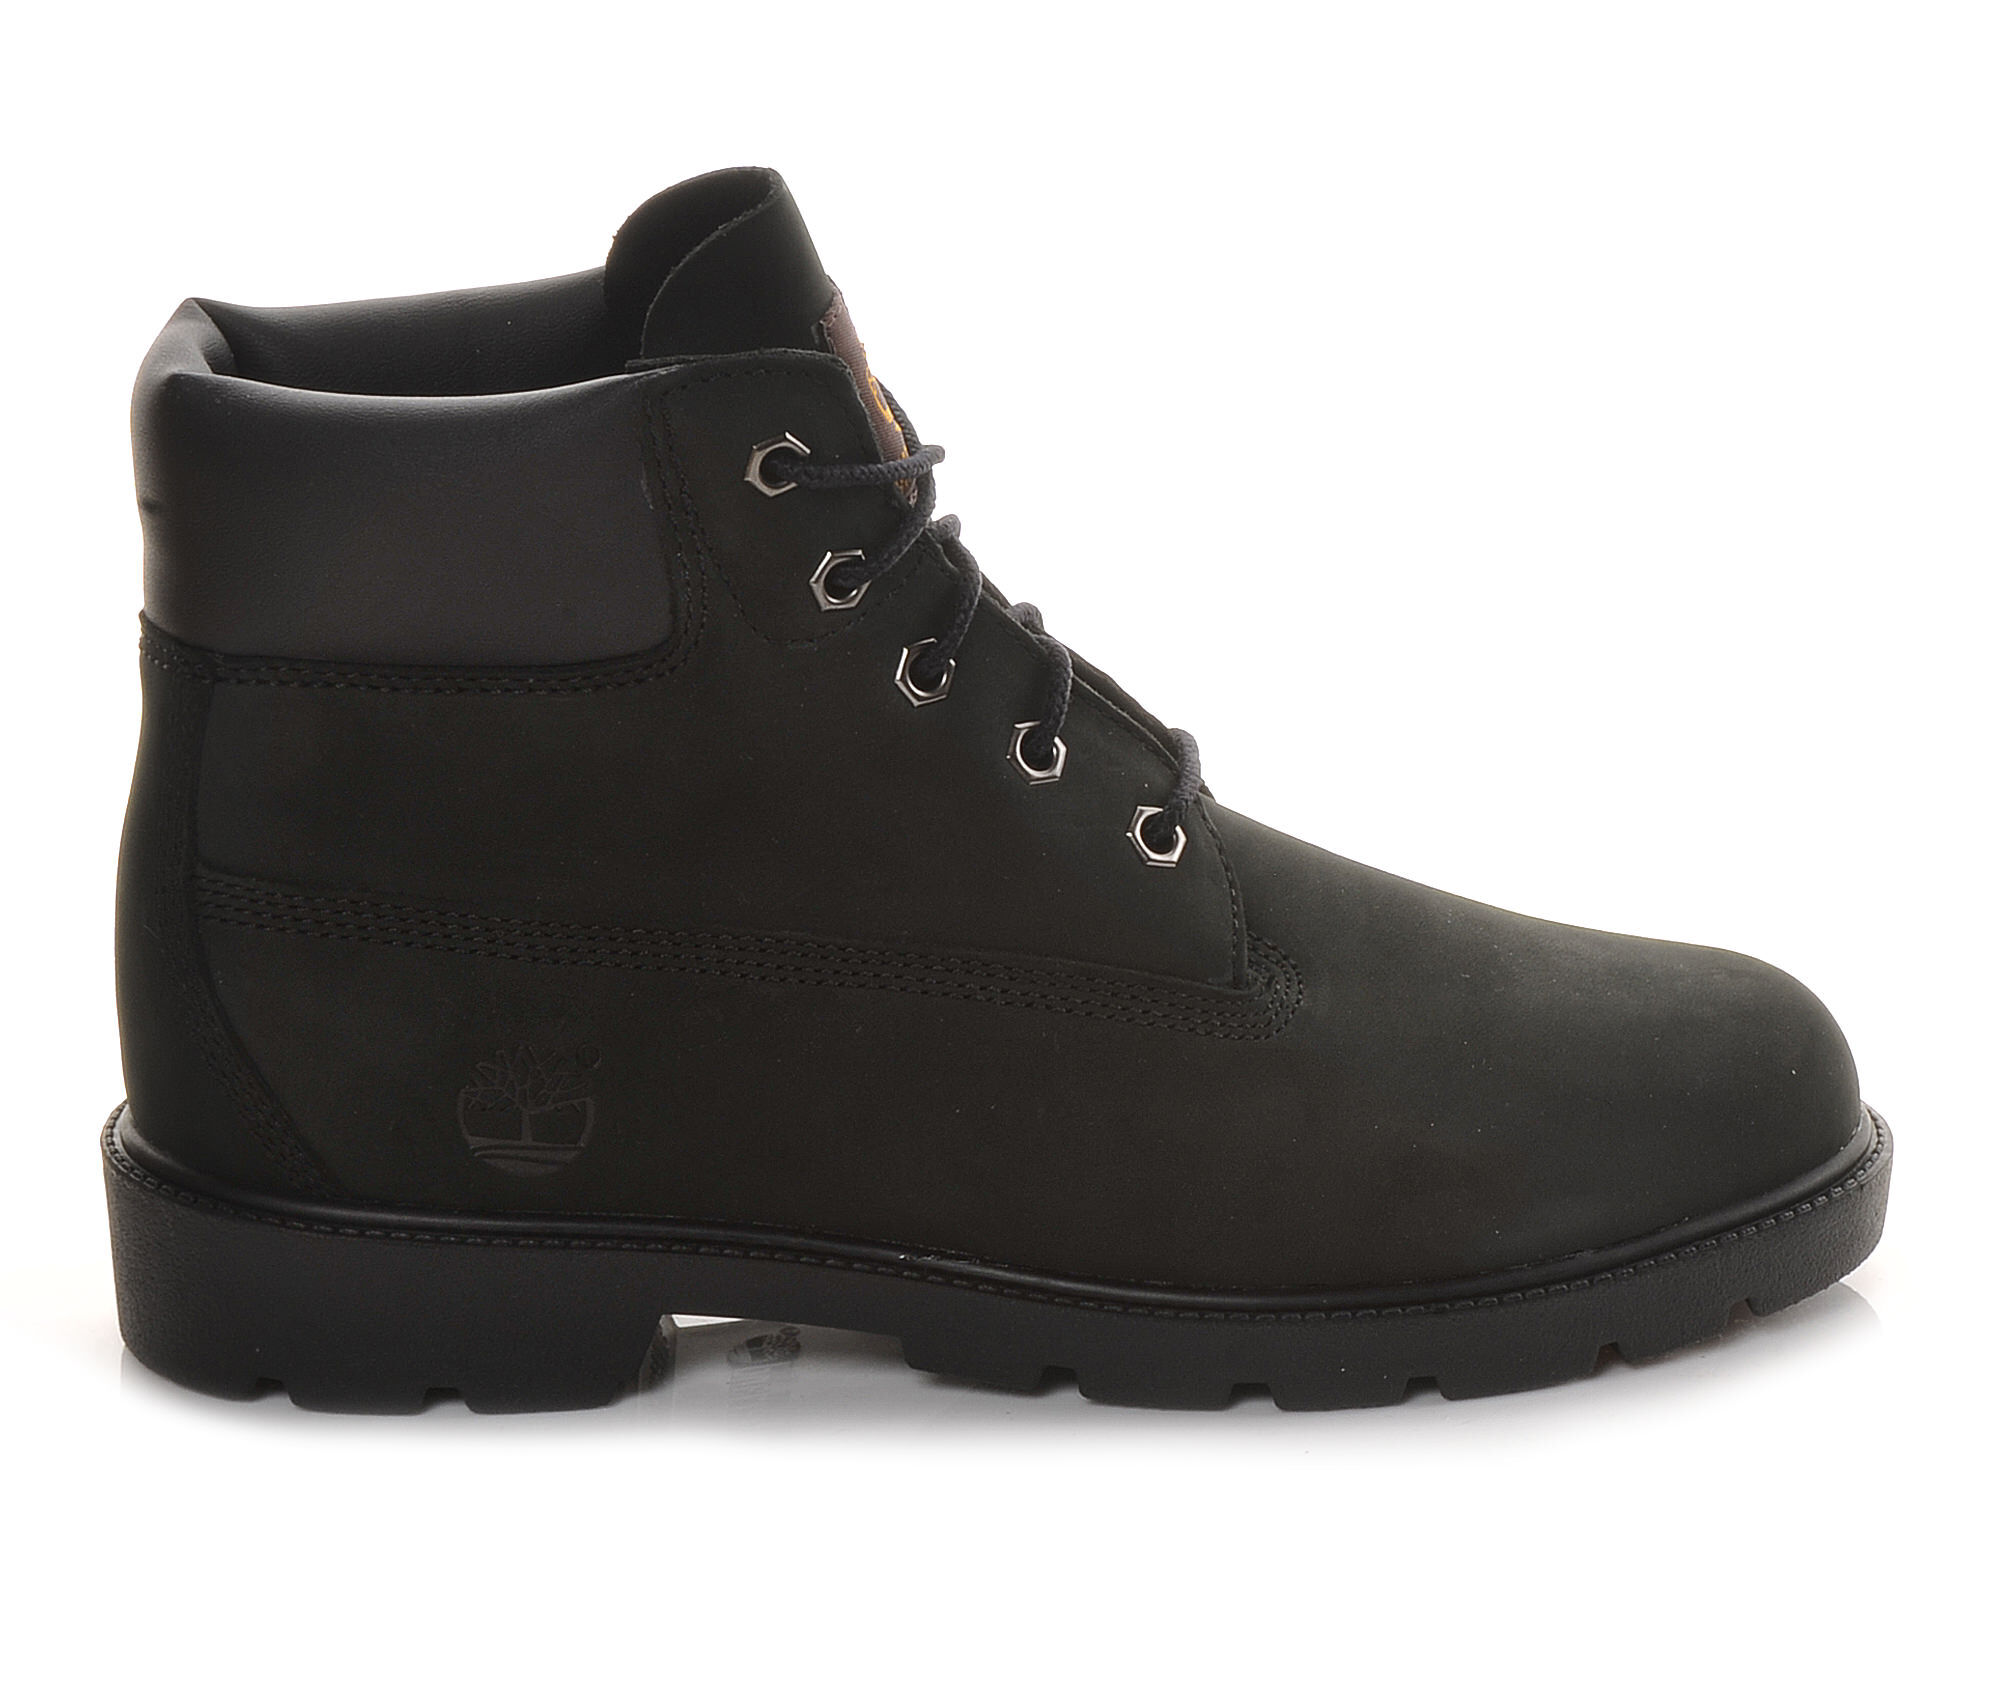 Image result for 6 inch black timberland boots outfit